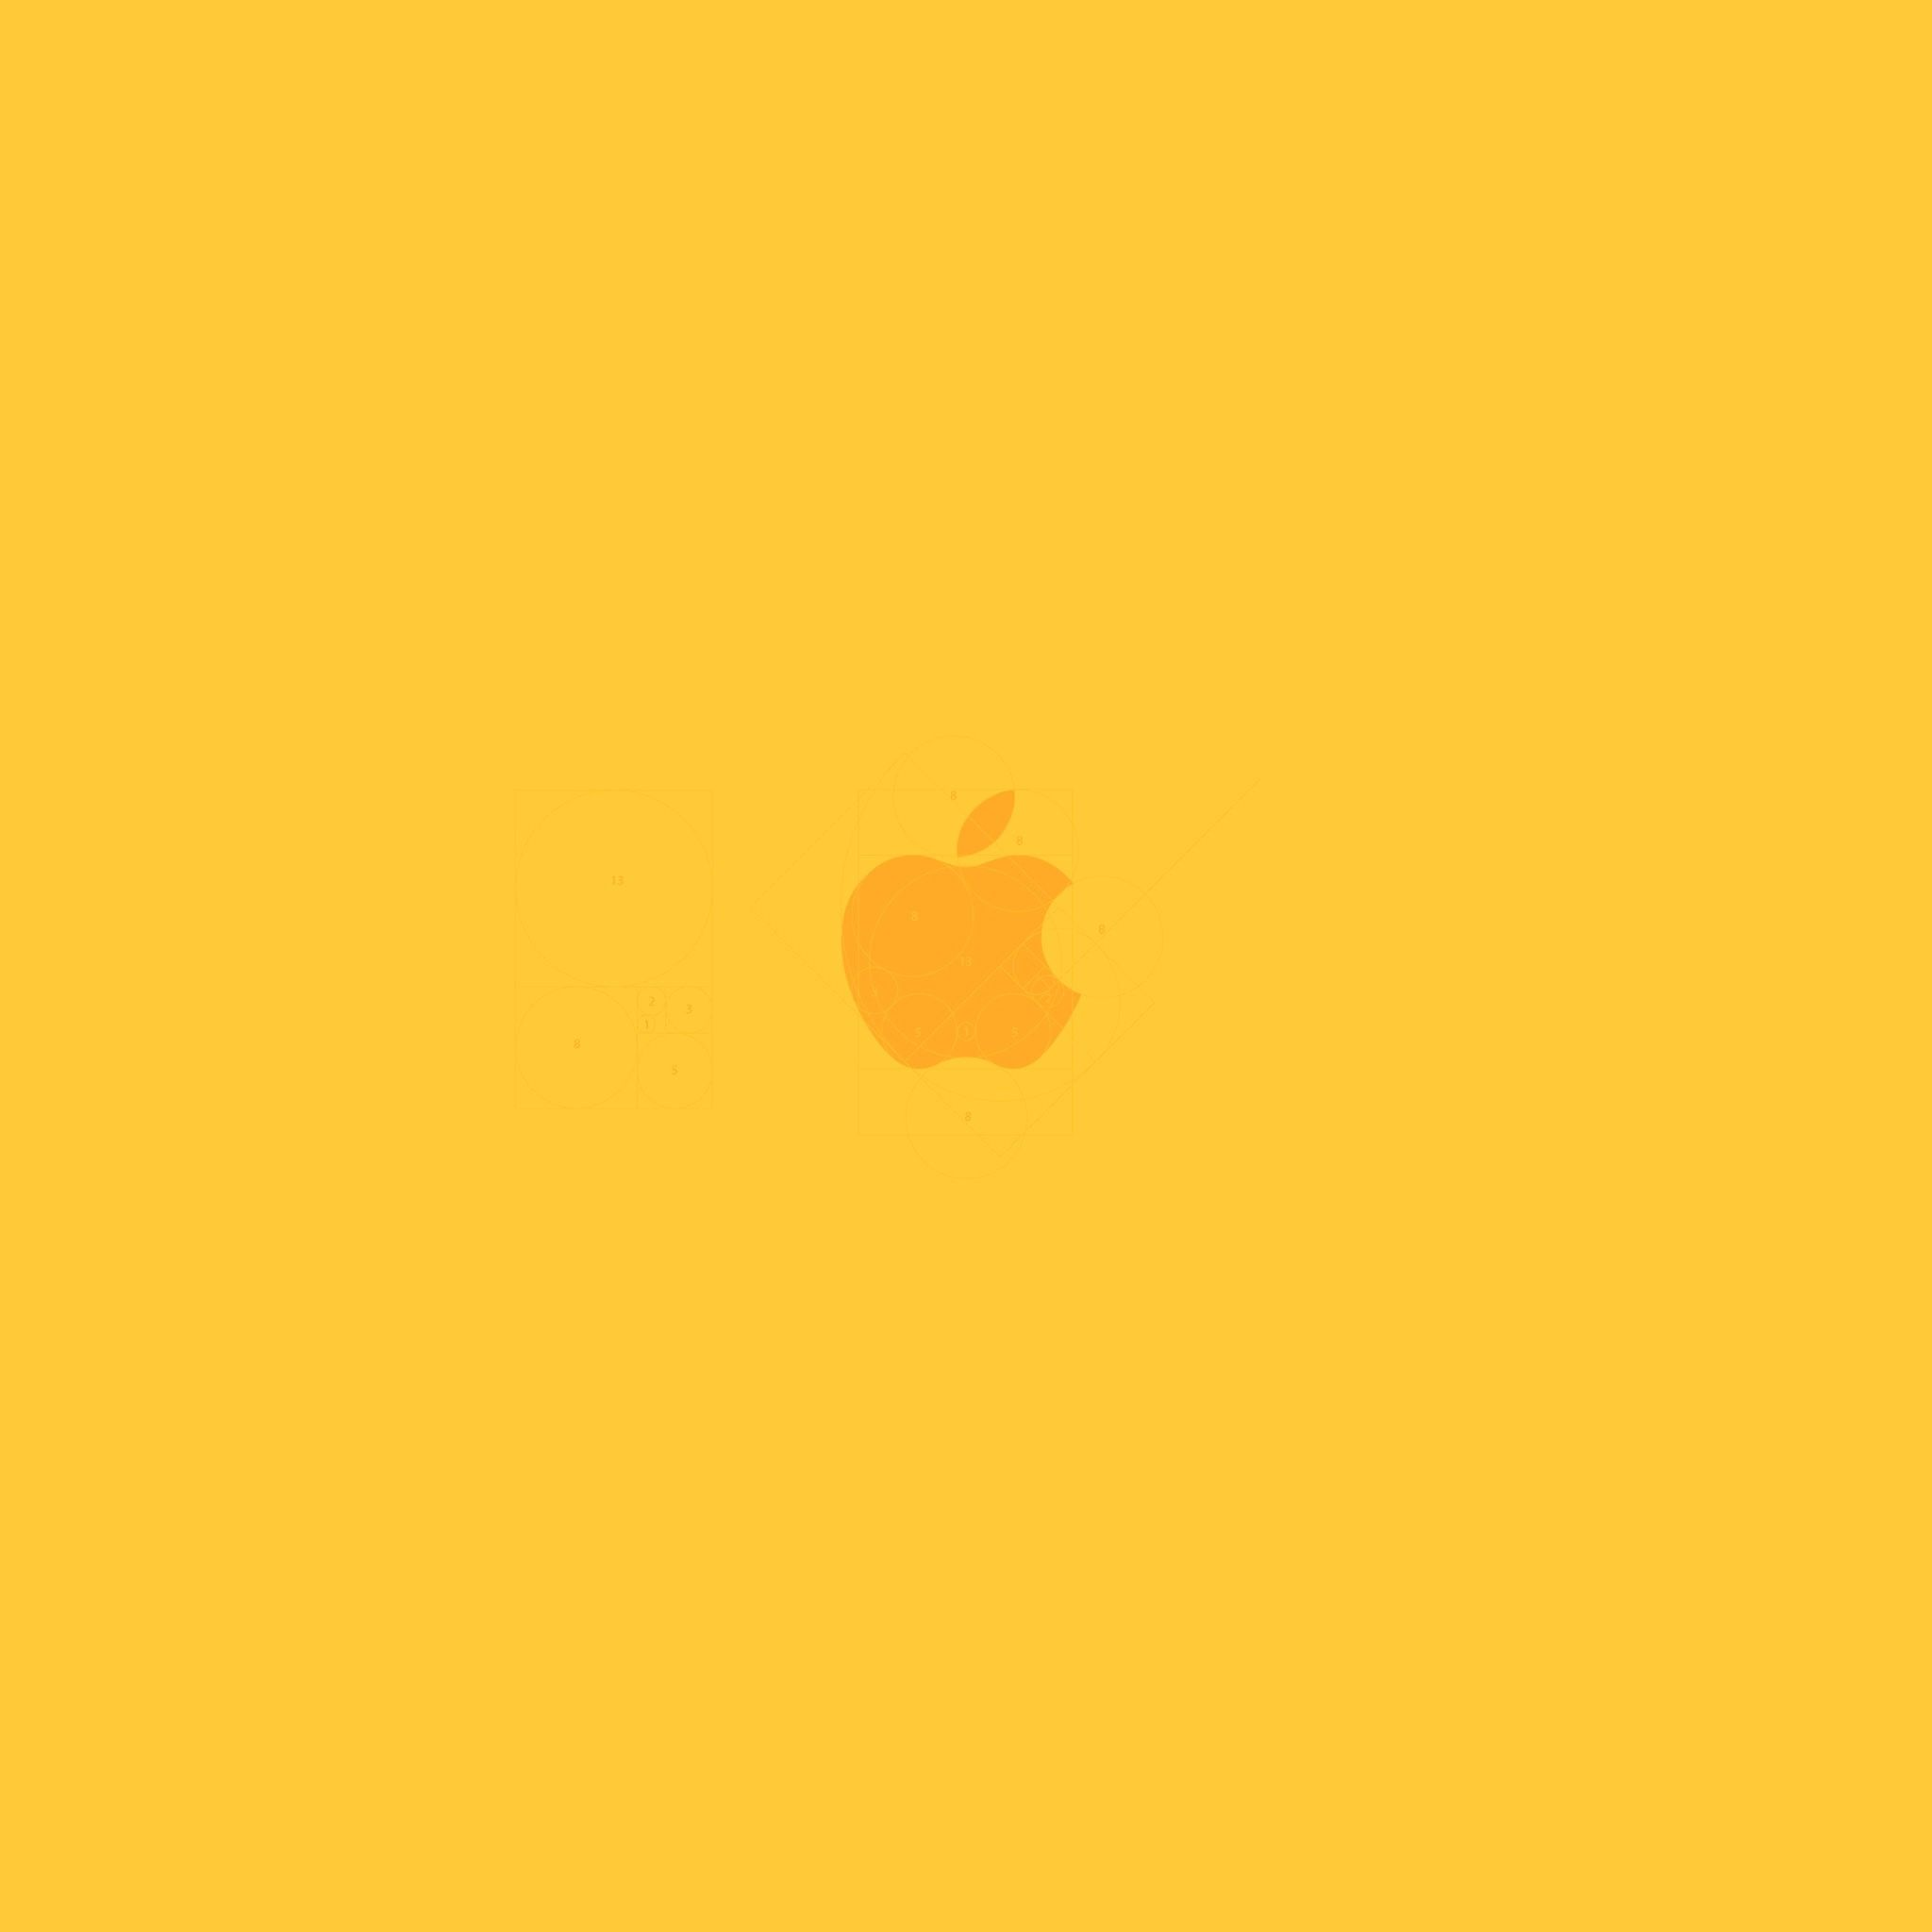 Yellow Apple. Tap to see more nice iPad wallpapers